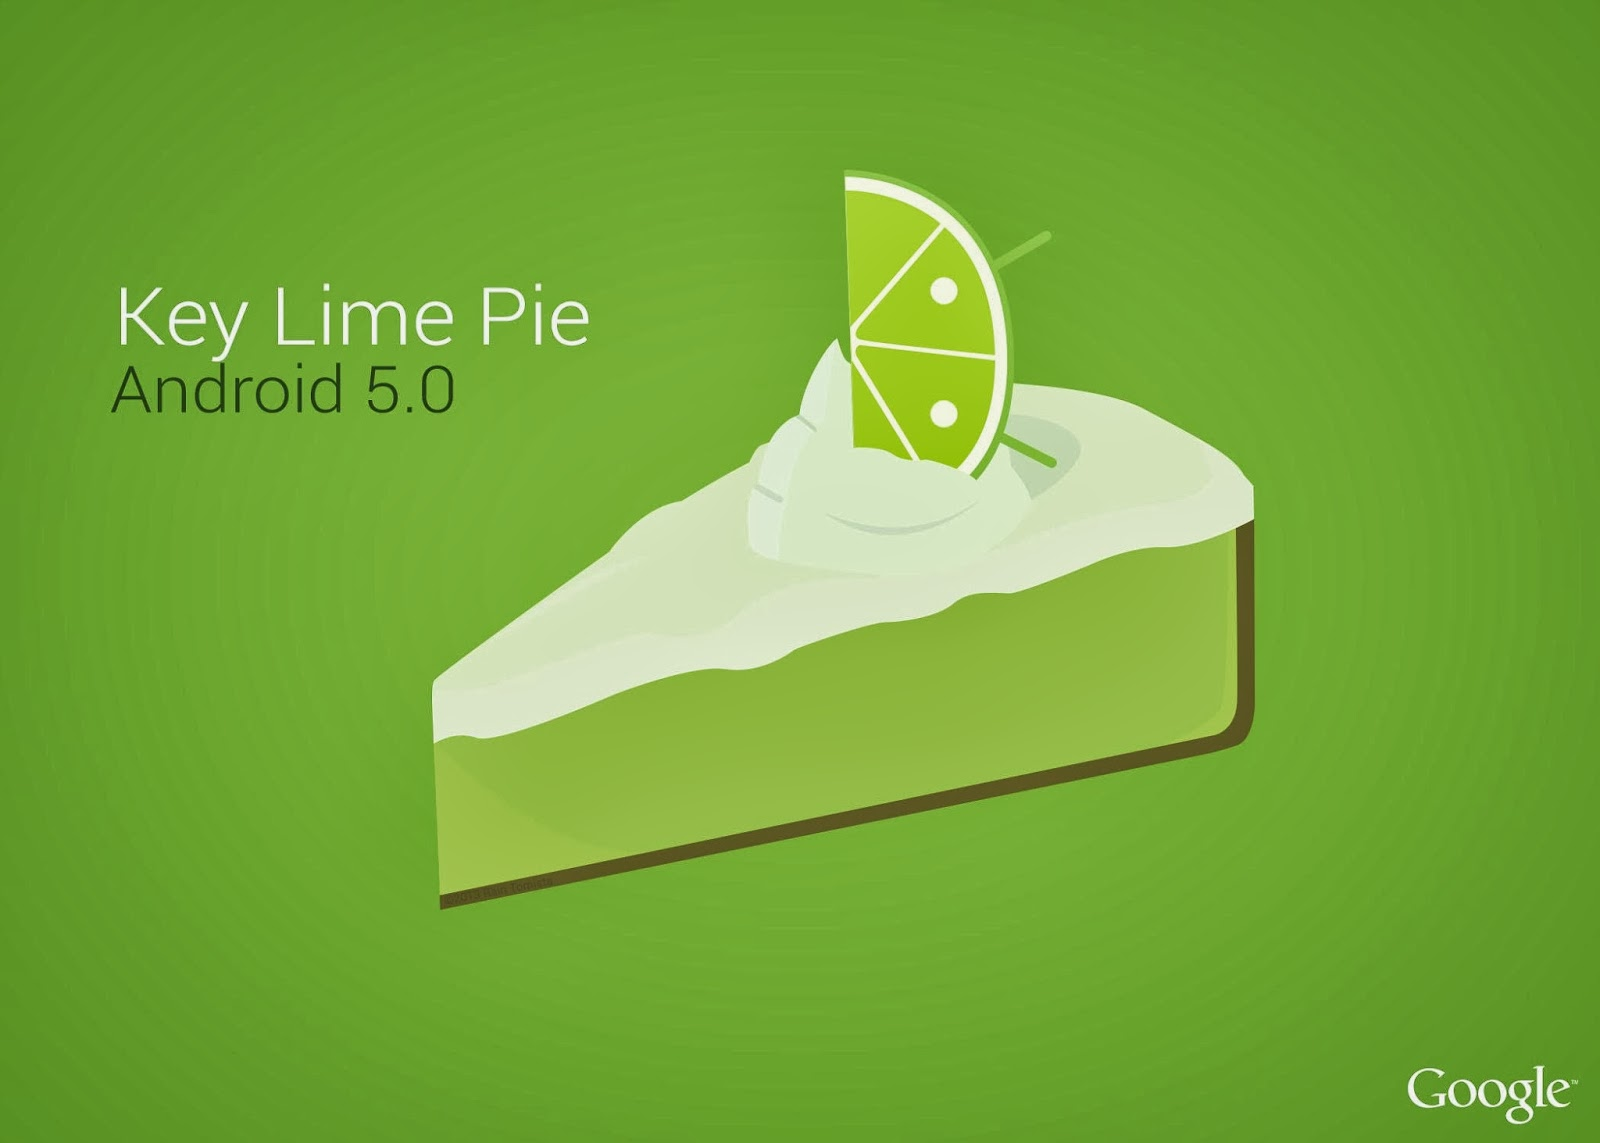 Google's Next Android Update Key Lime Pie After Jelly Bean